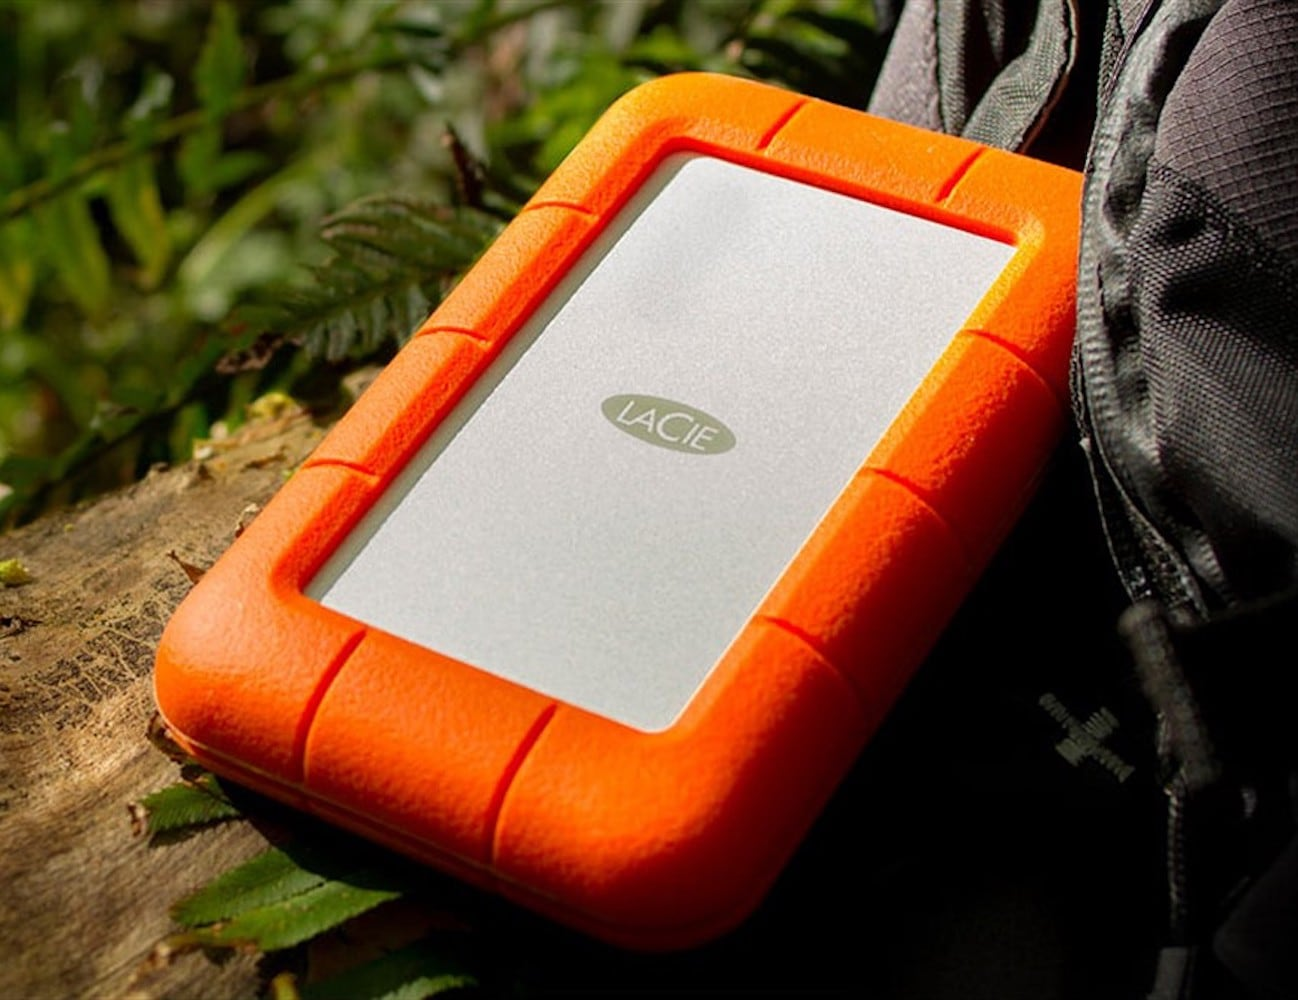 NEW DRIVERS: LACIE RUGGED MINI